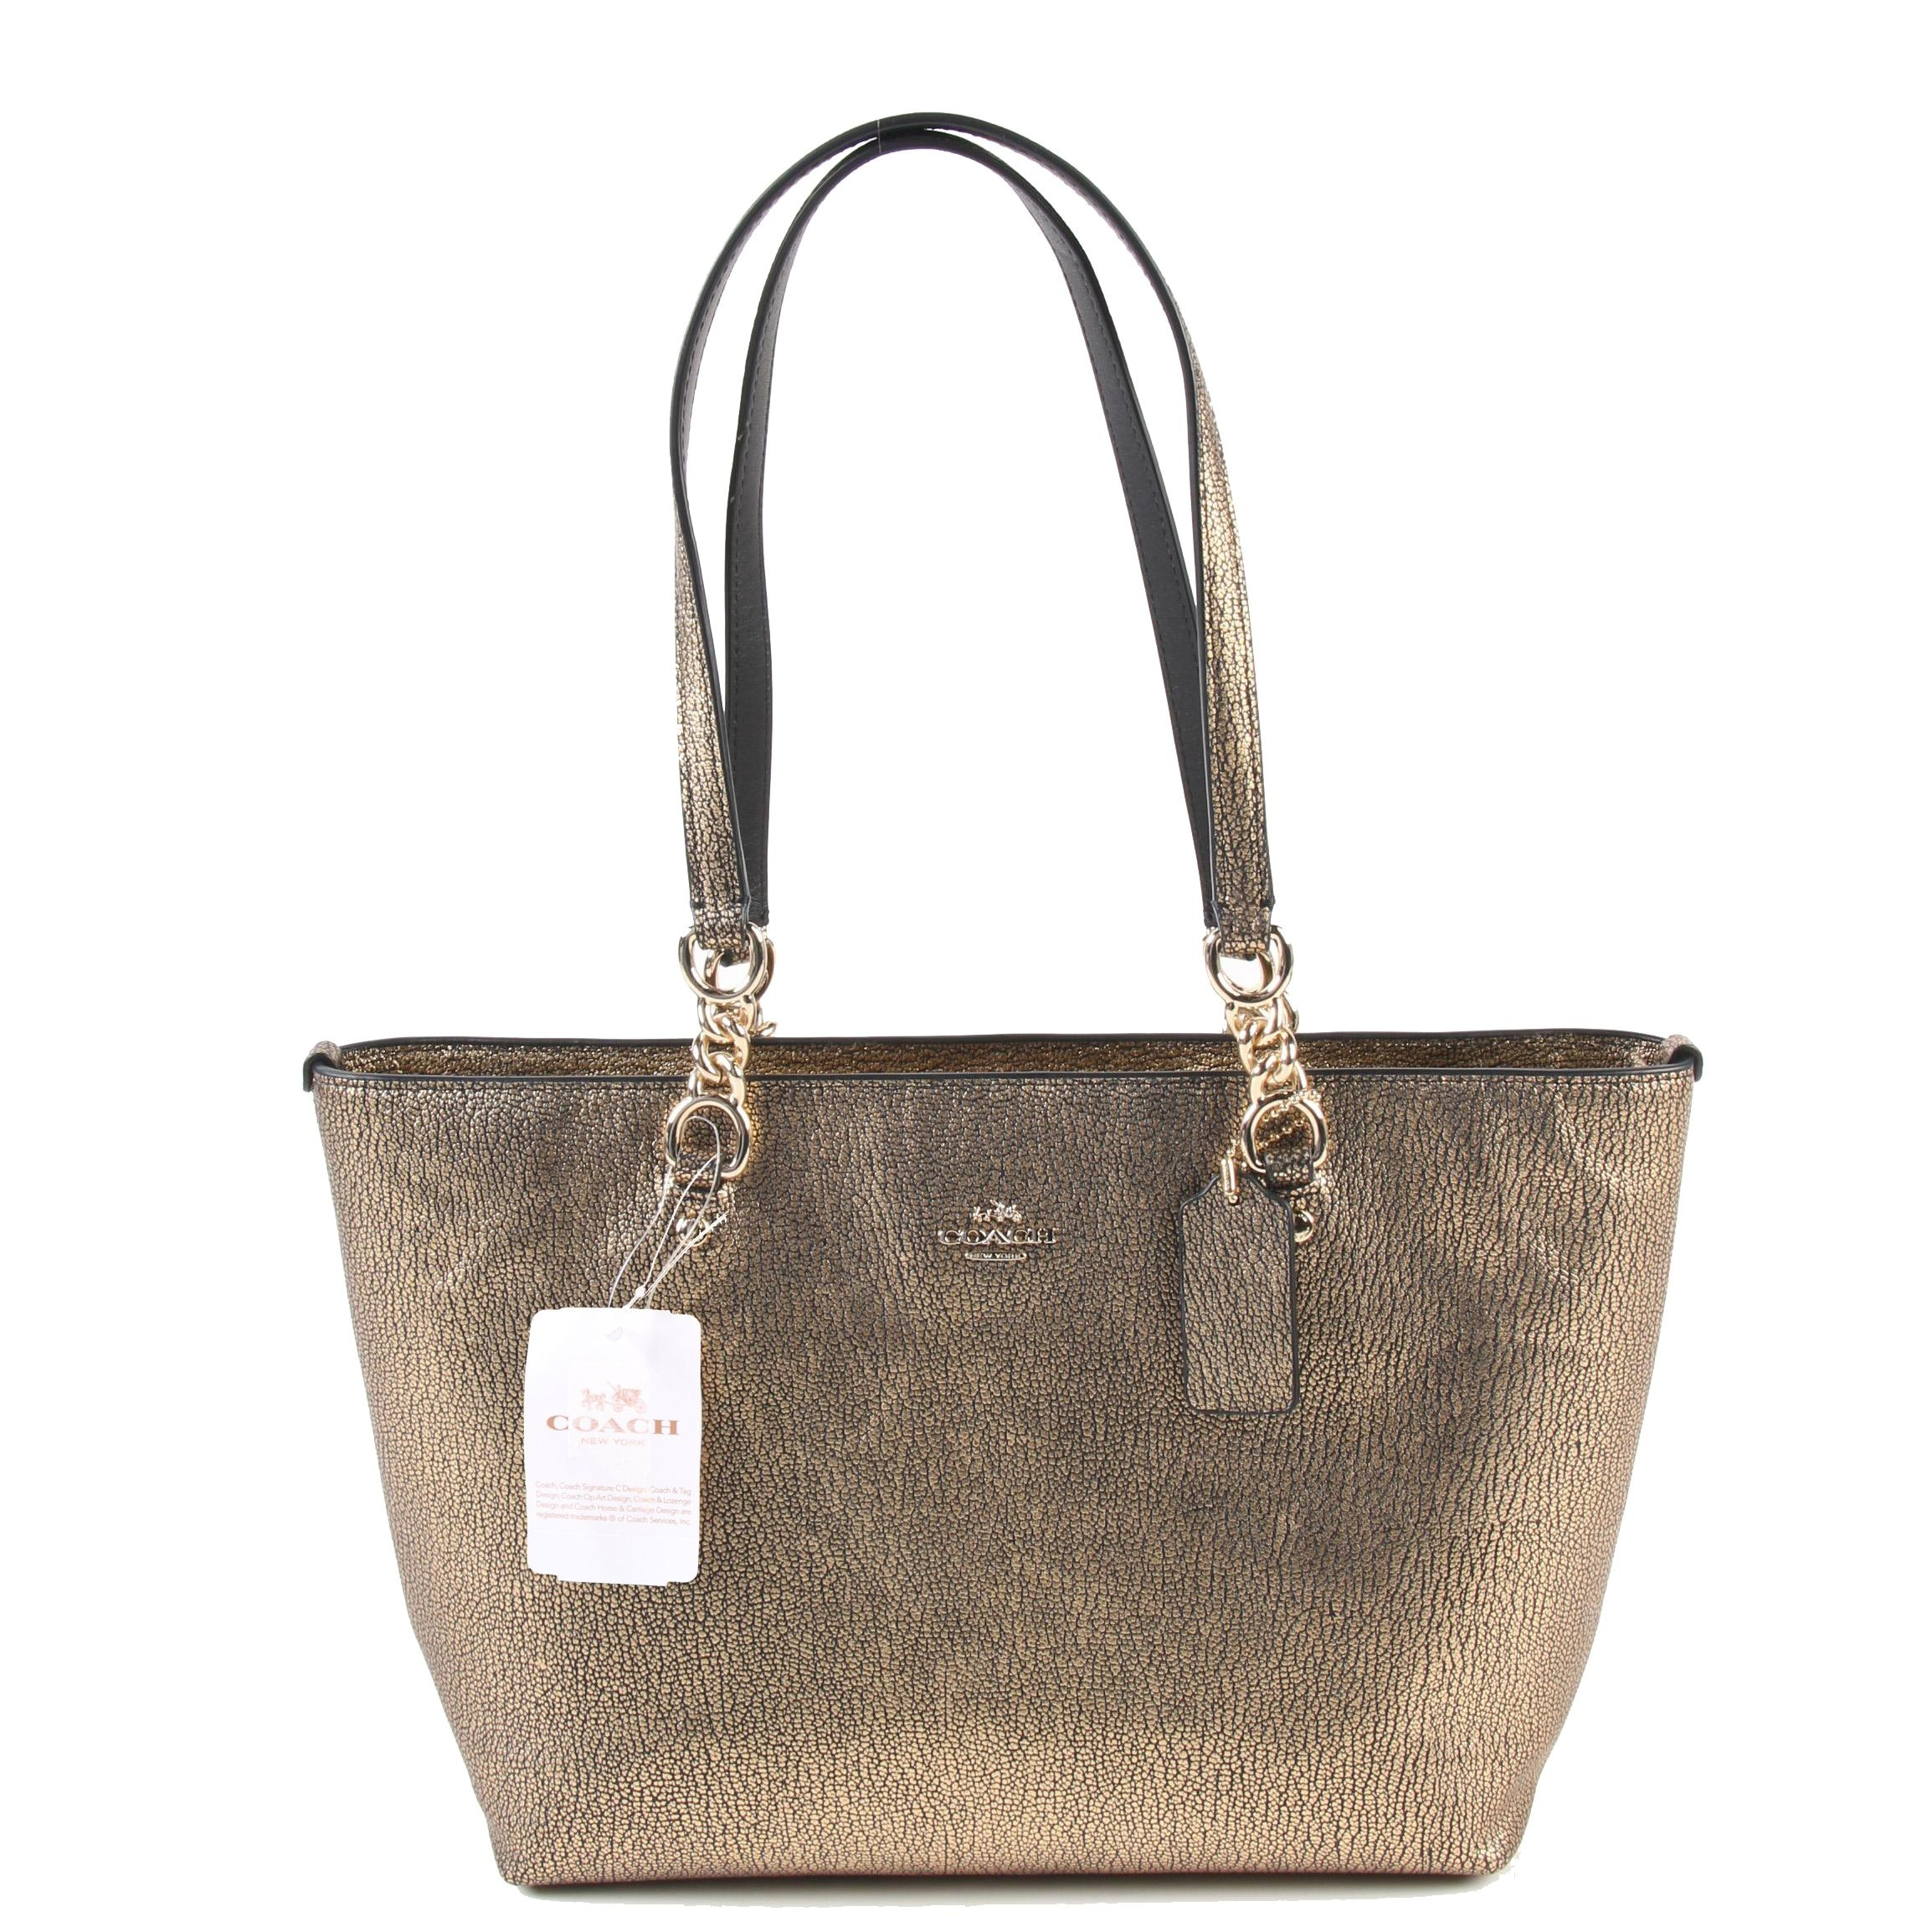 Coach New York Small Sophia Tote in Metallic Gold on Black Pebbled Leather